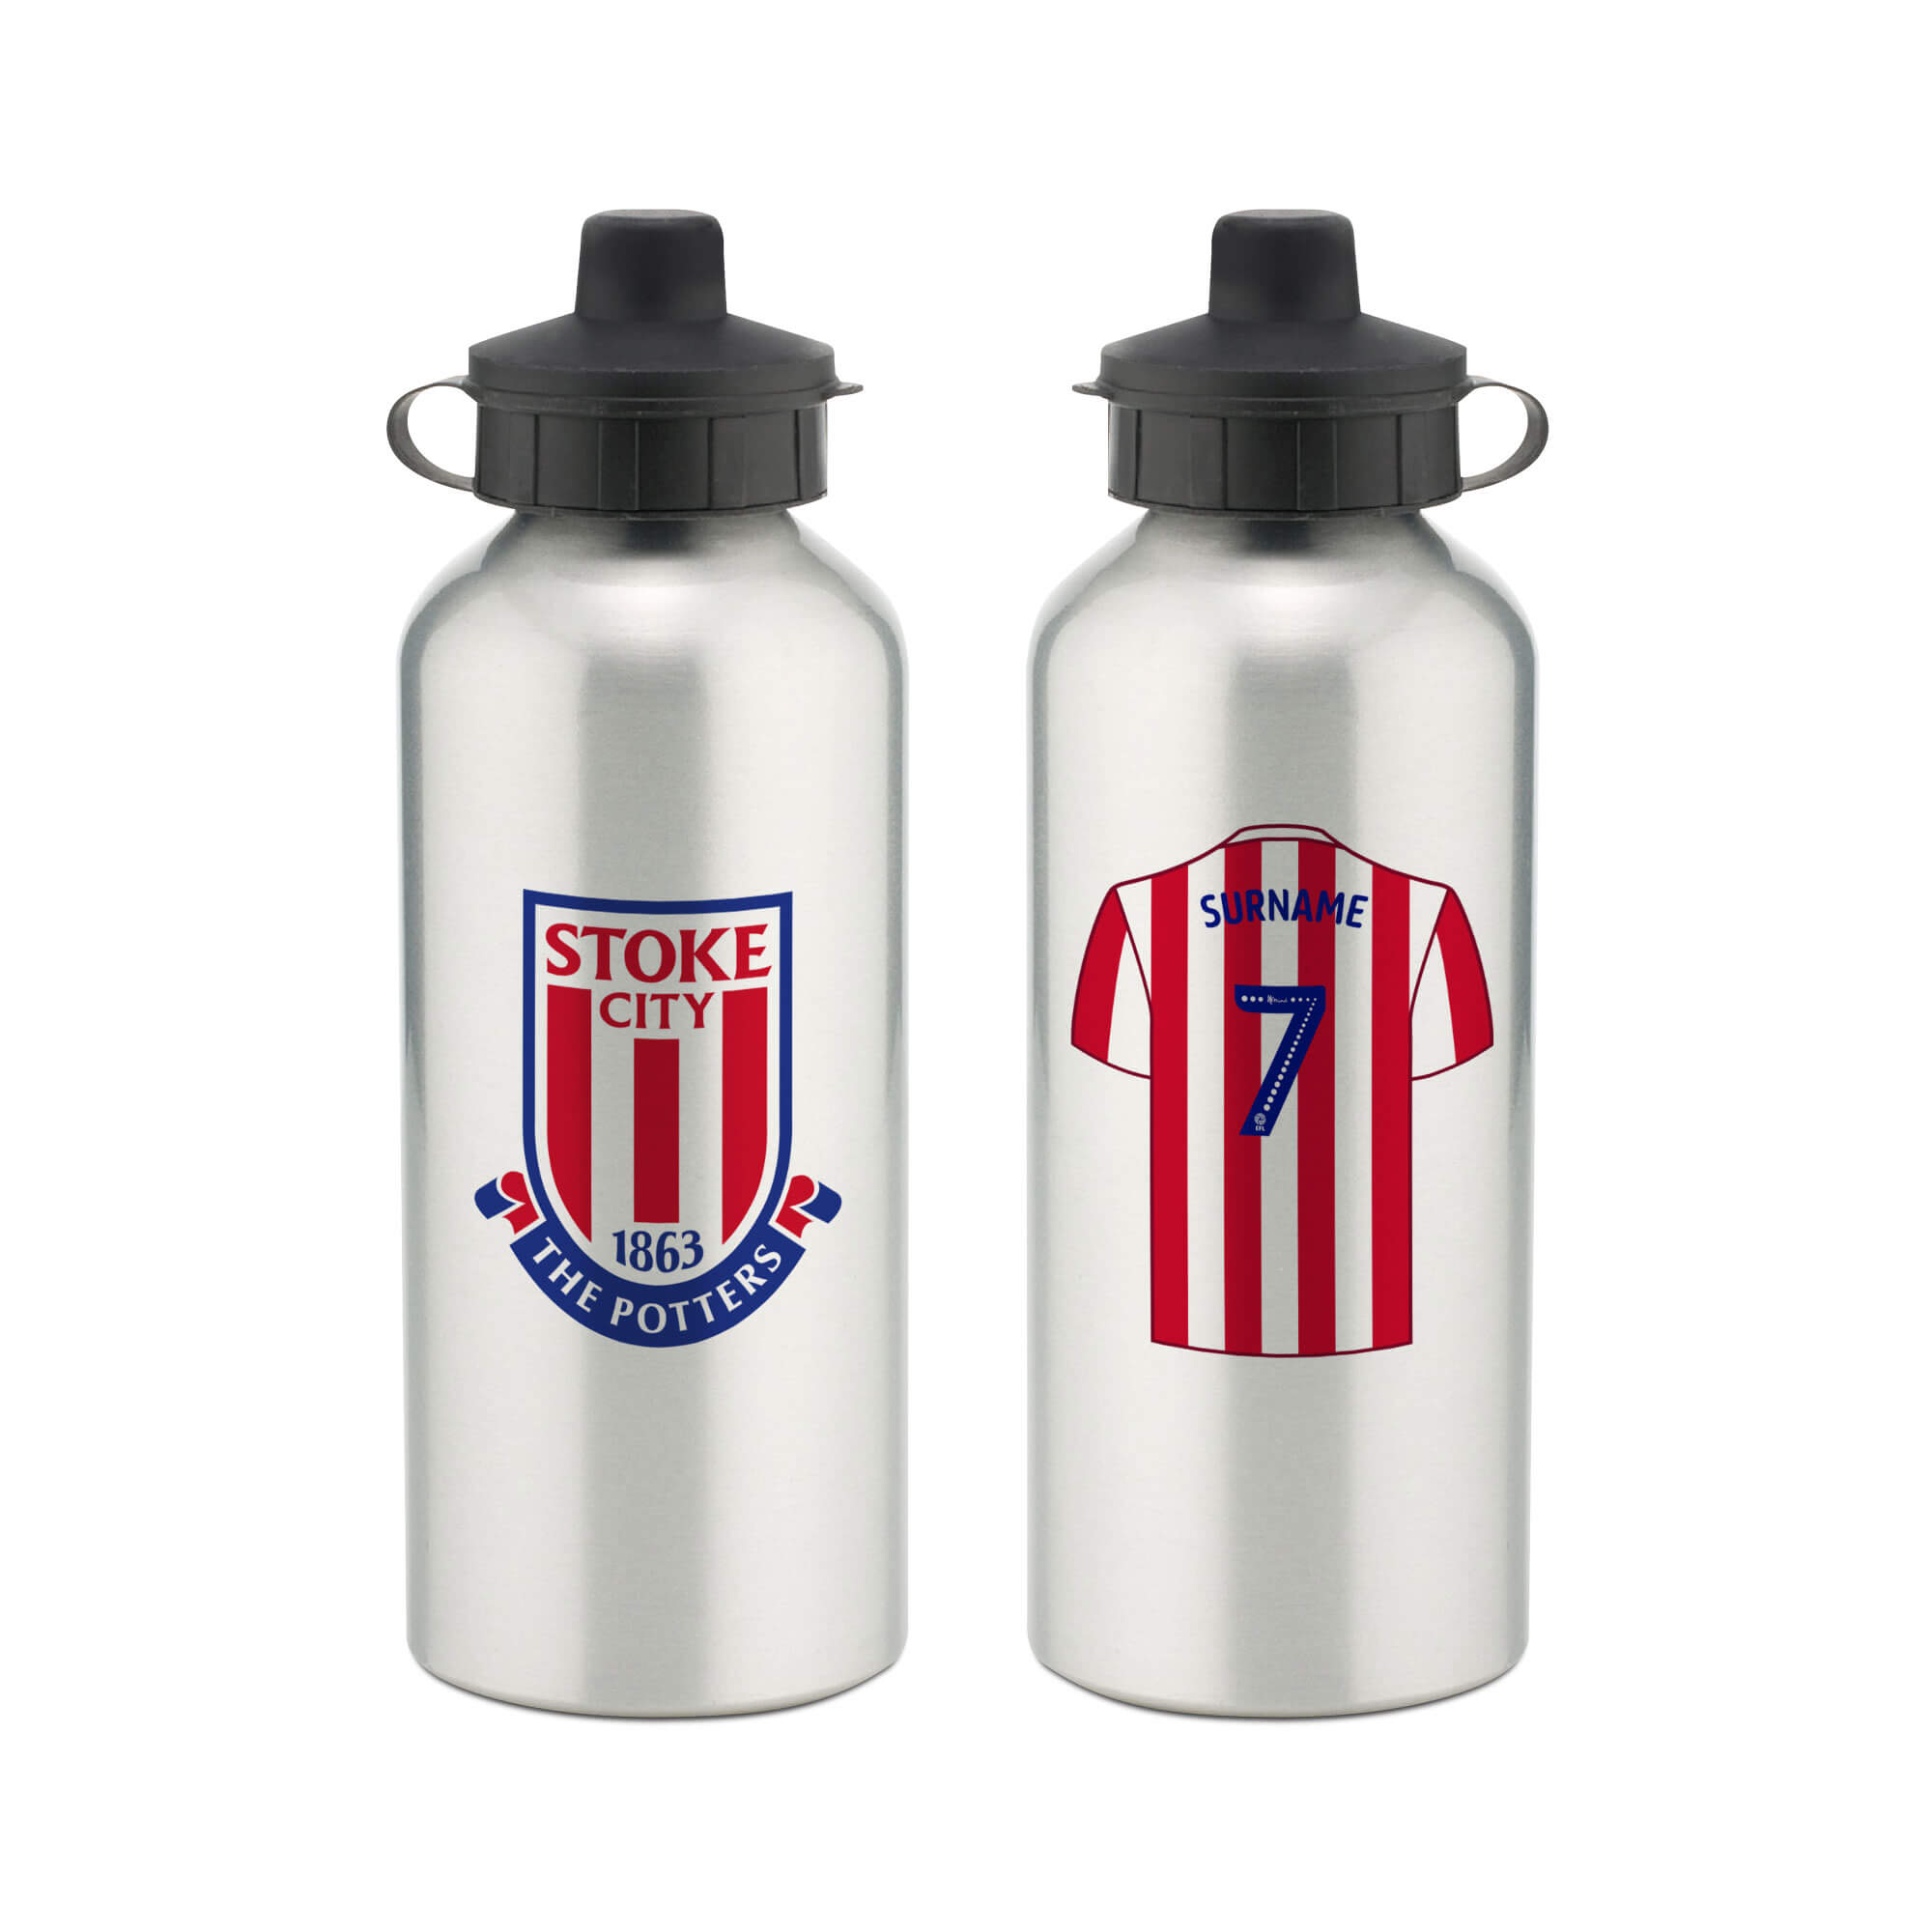 Stoke City FC Aluminium Water Bottle